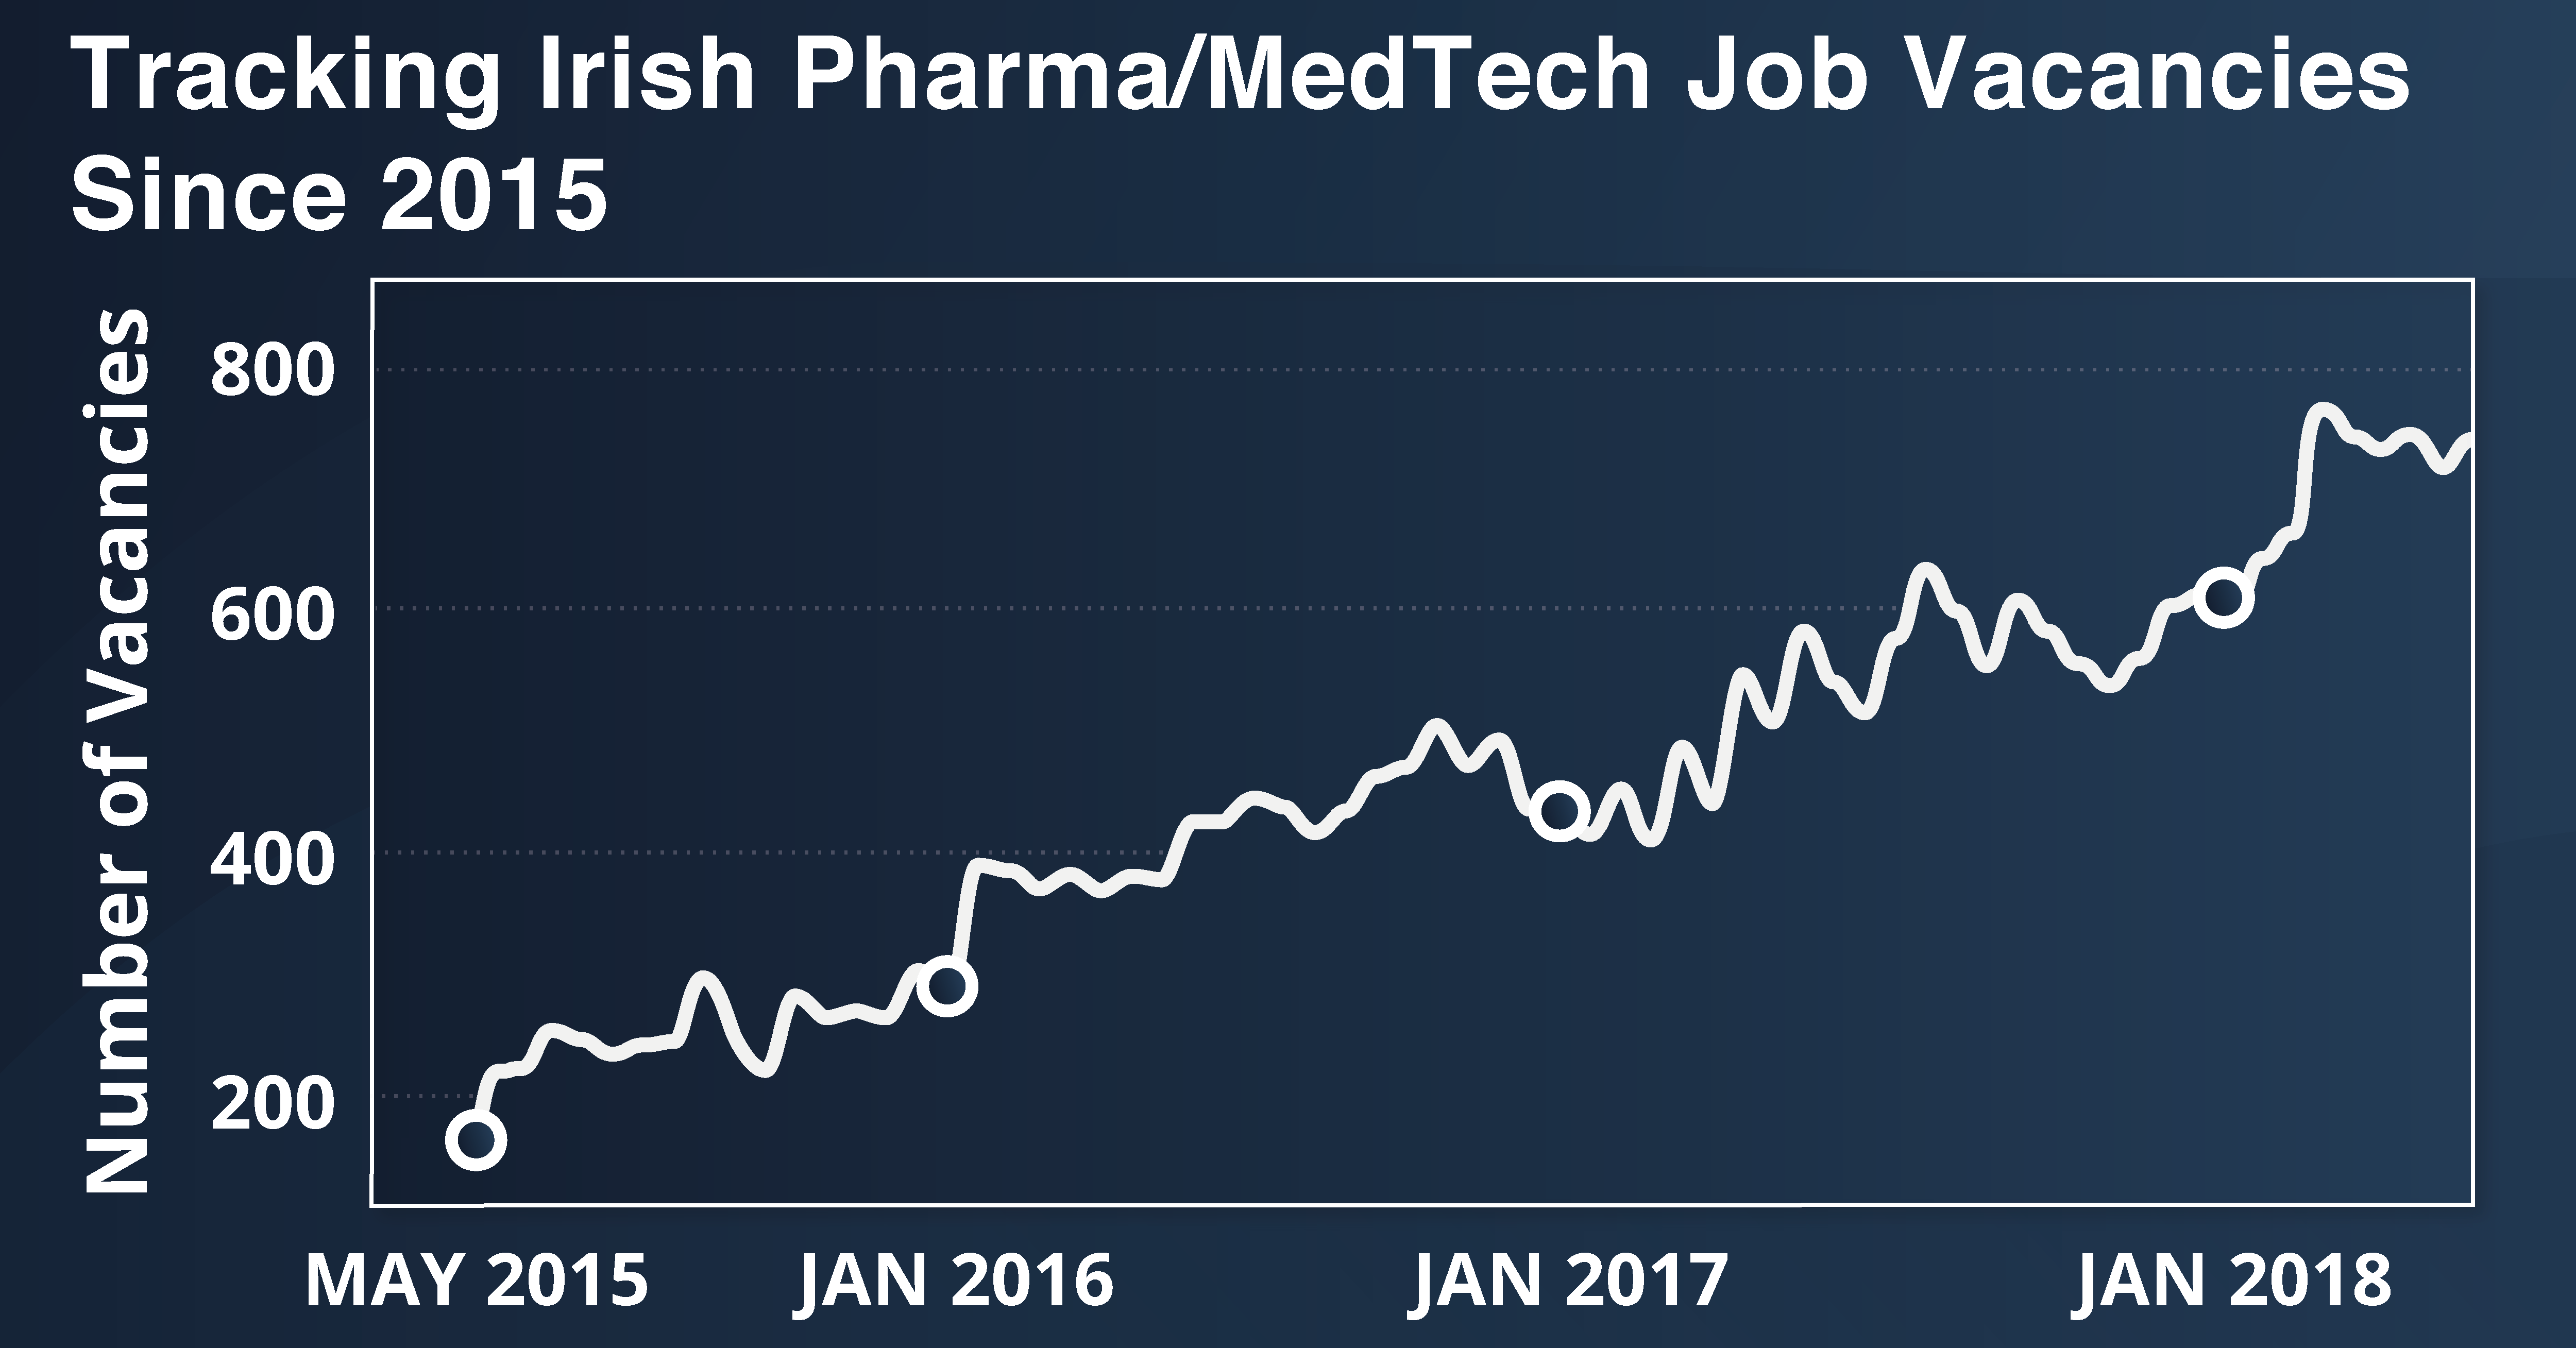 Pharmaceutical Job Vacancies in Ireland from 2015 to 2018